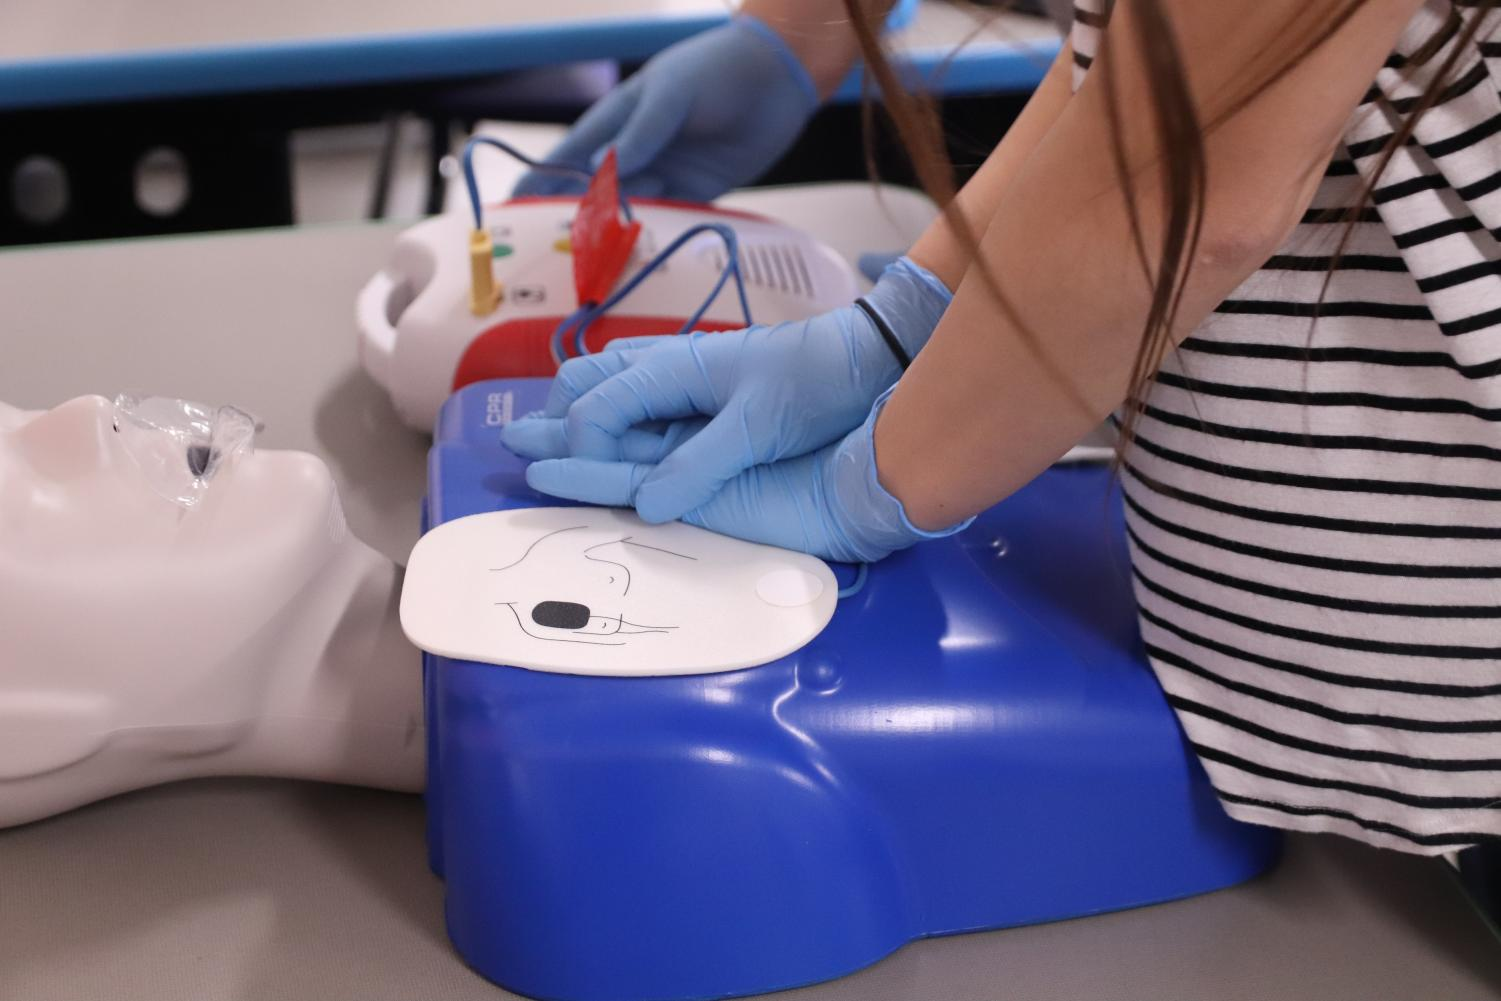 Kayla Hoffman performing CPR on a simulator.